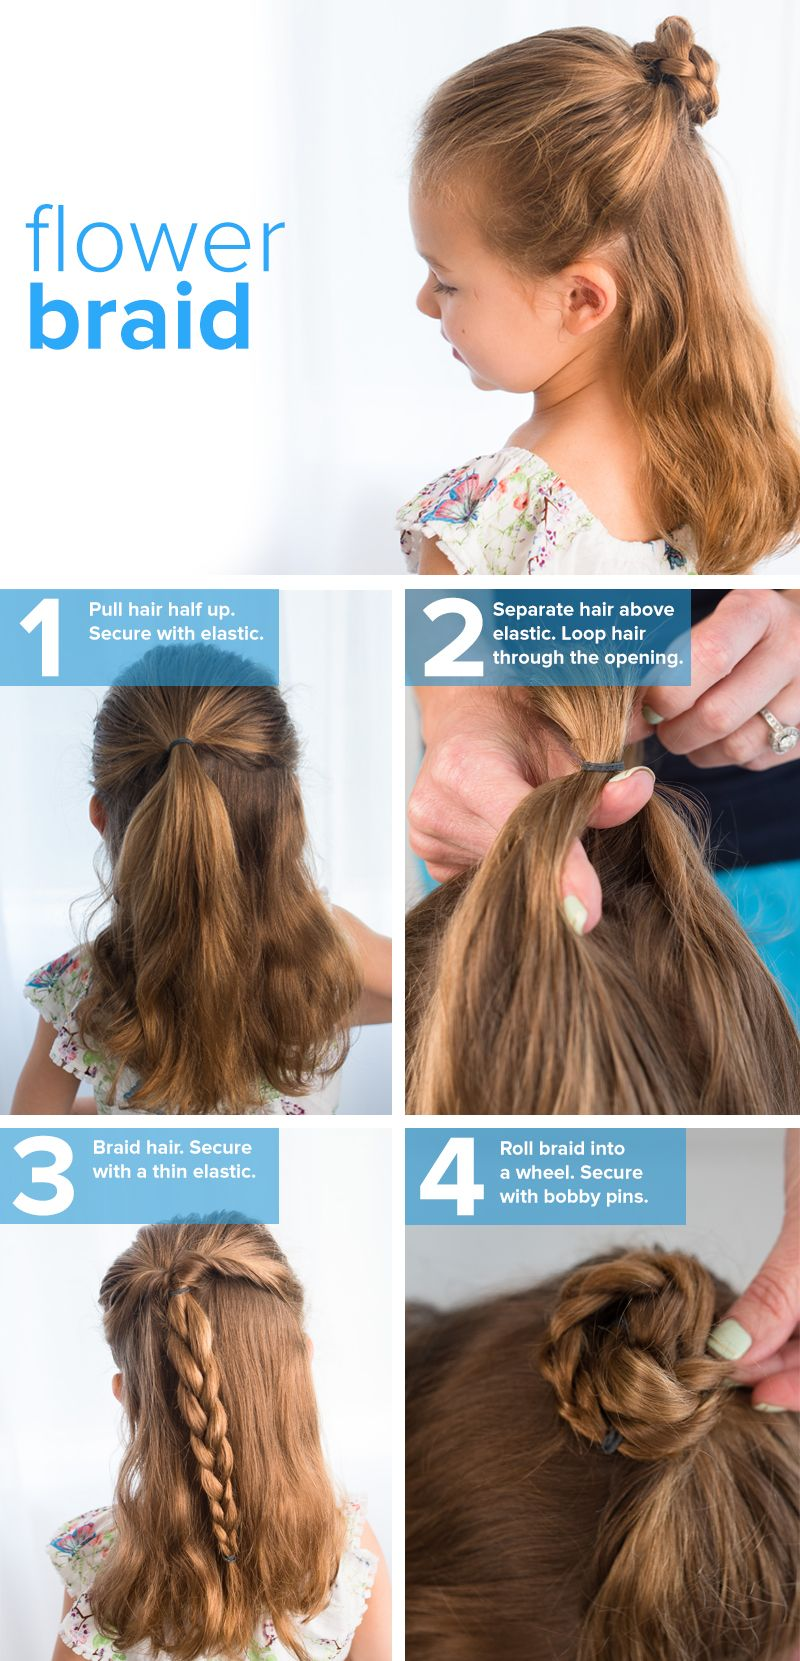 12 easy back-to school hairstyles for girls  Cute simple